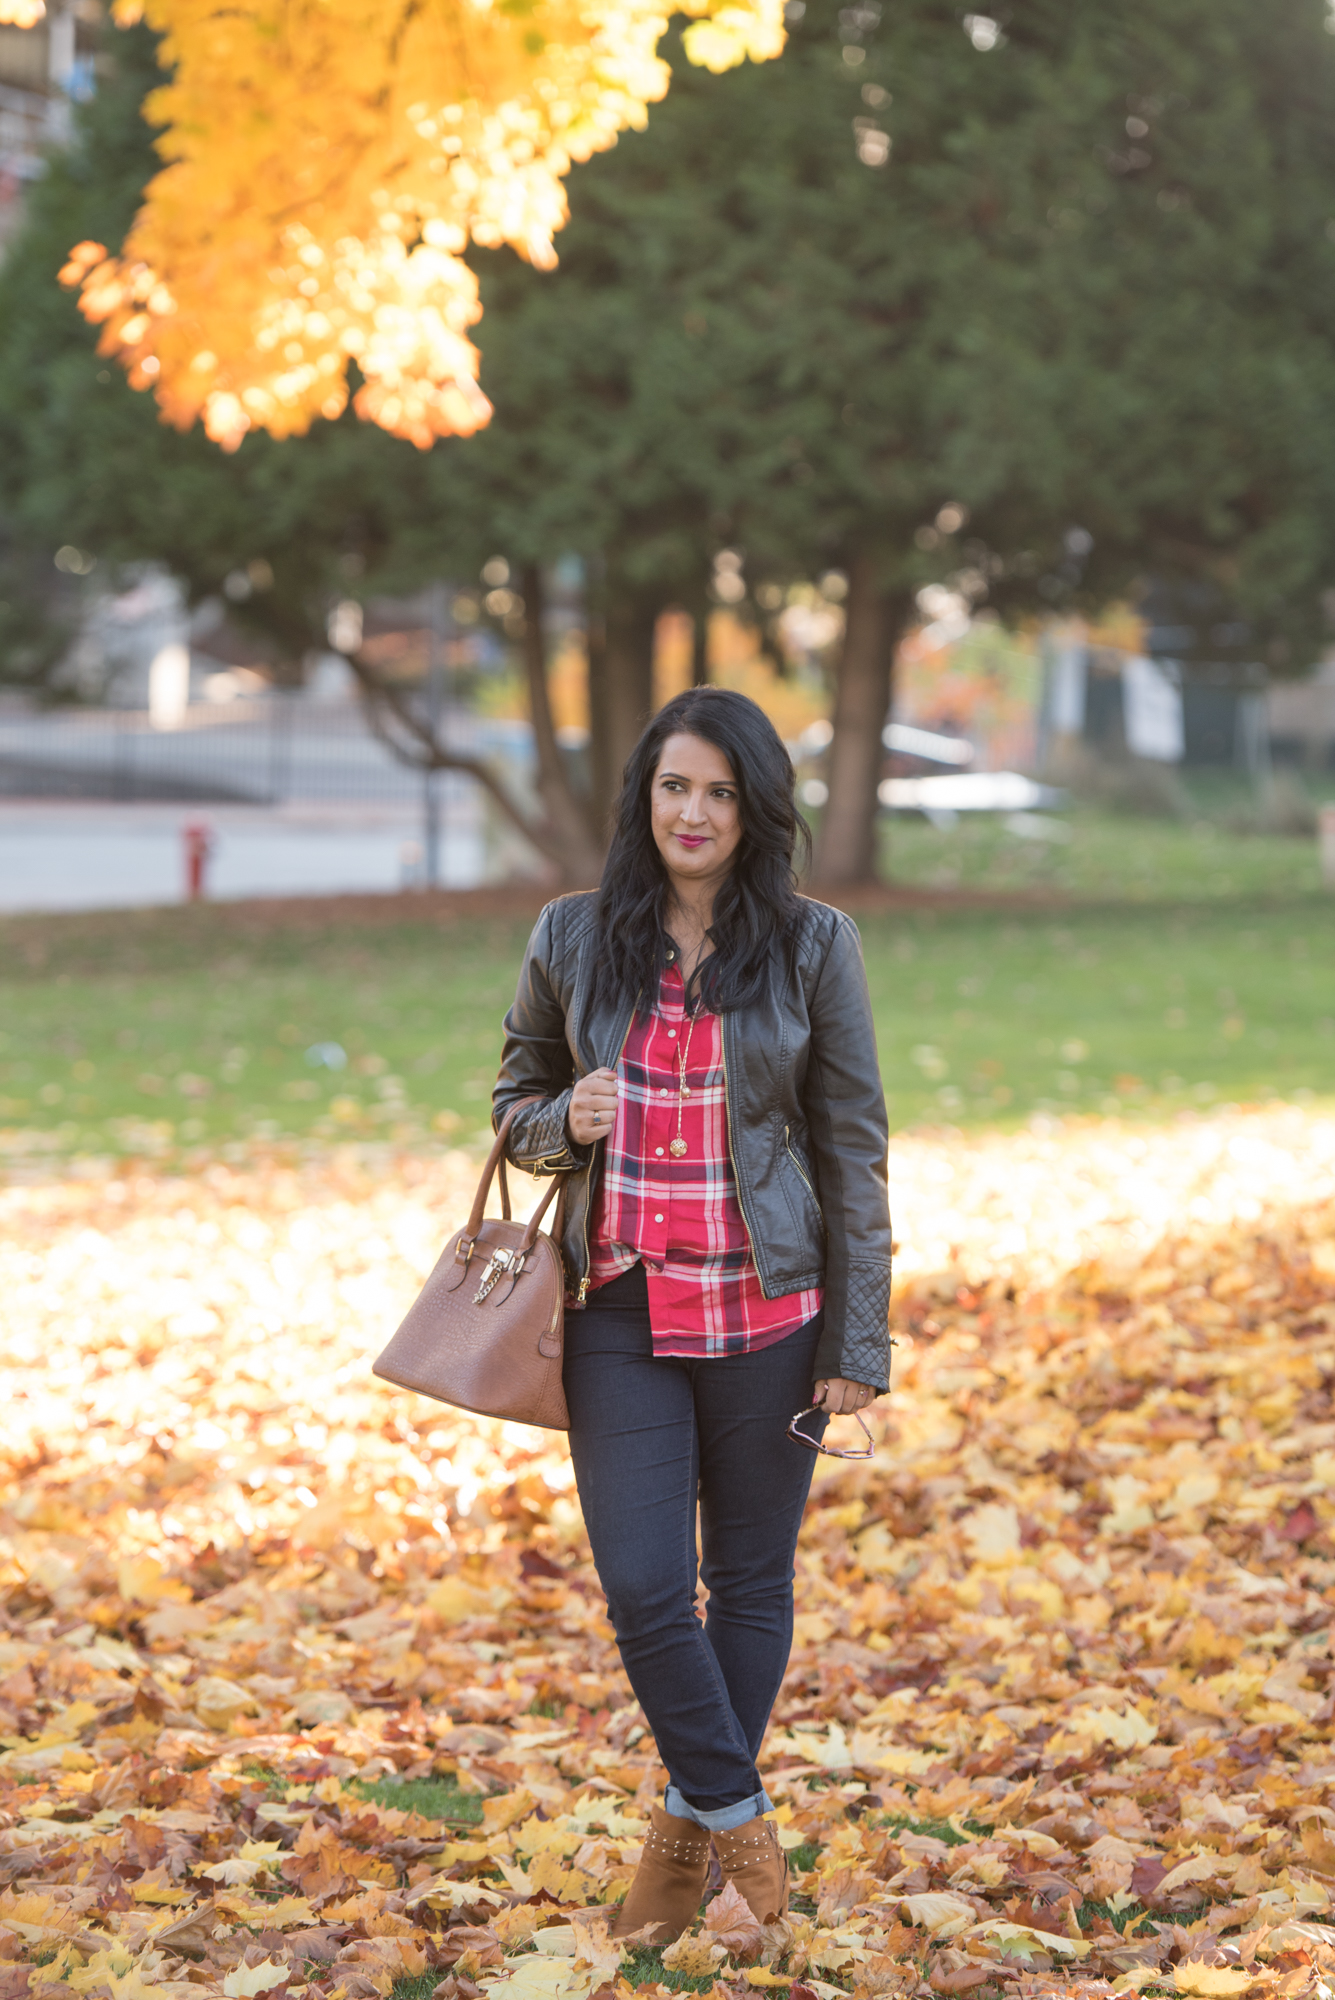 Fall Outift 30 for 30 remix - skinny jeans + plaid shirt